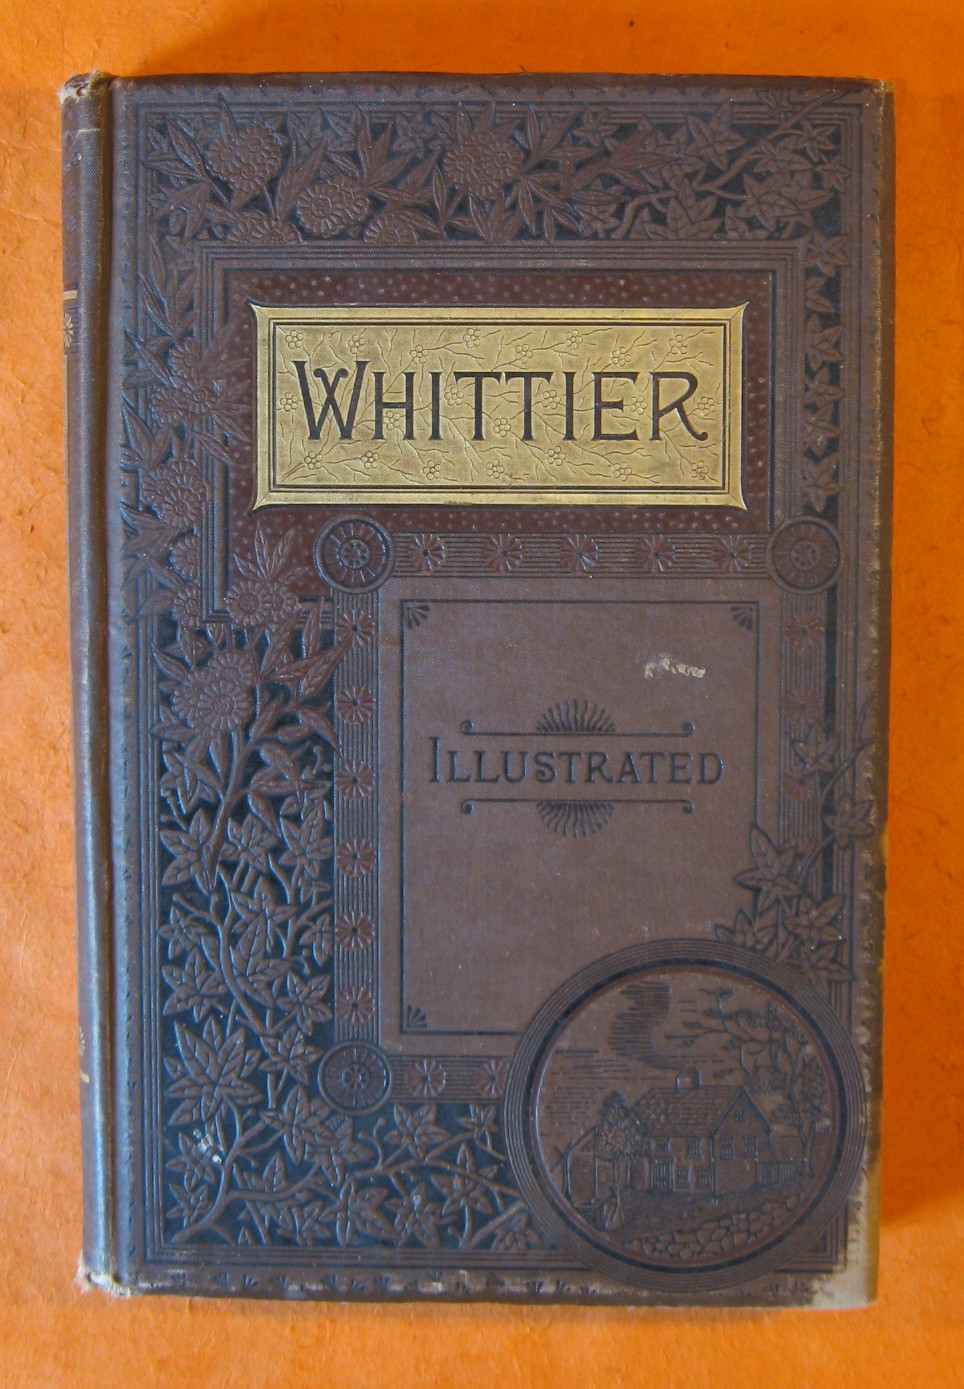 The Poetical Works of John Greenleaf Whittier, Whittier, John Greenleaf